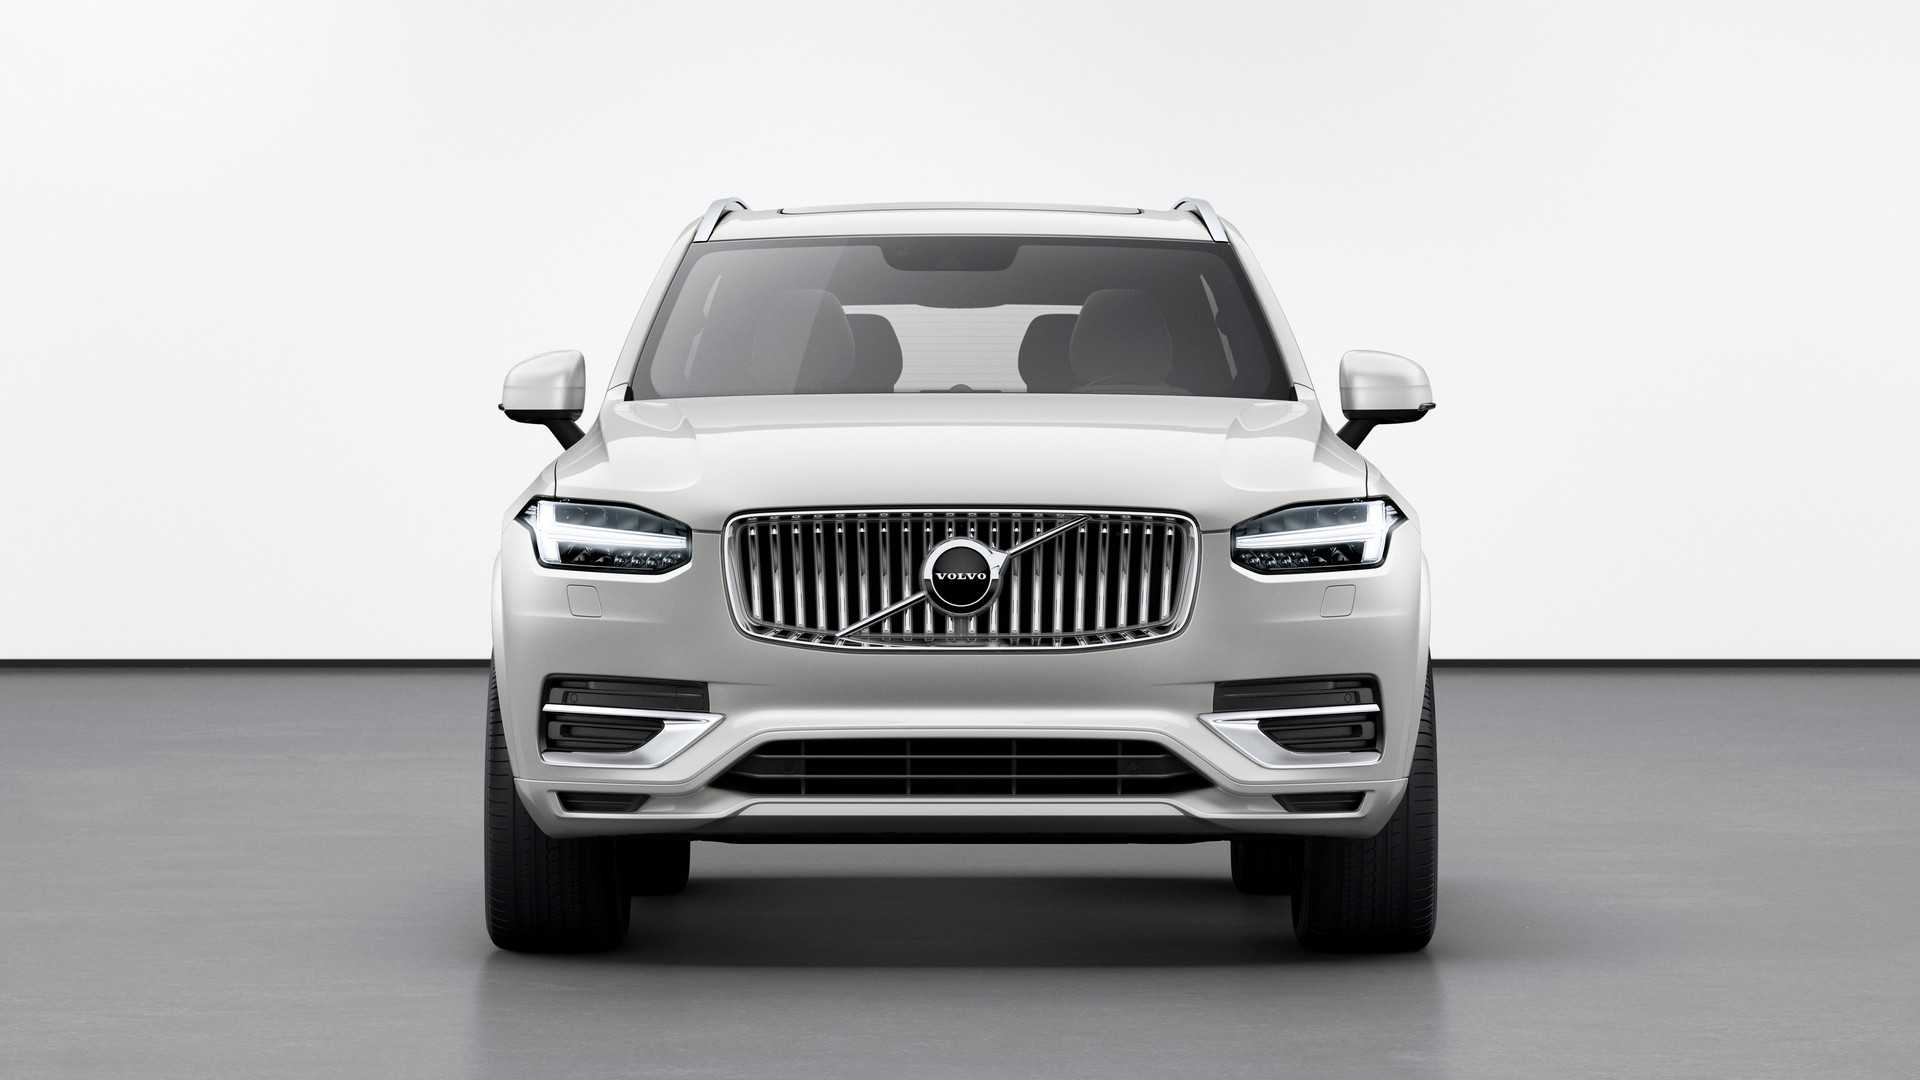 55 All New Volvo Xc90 Facelift 2020 Uk Configurations